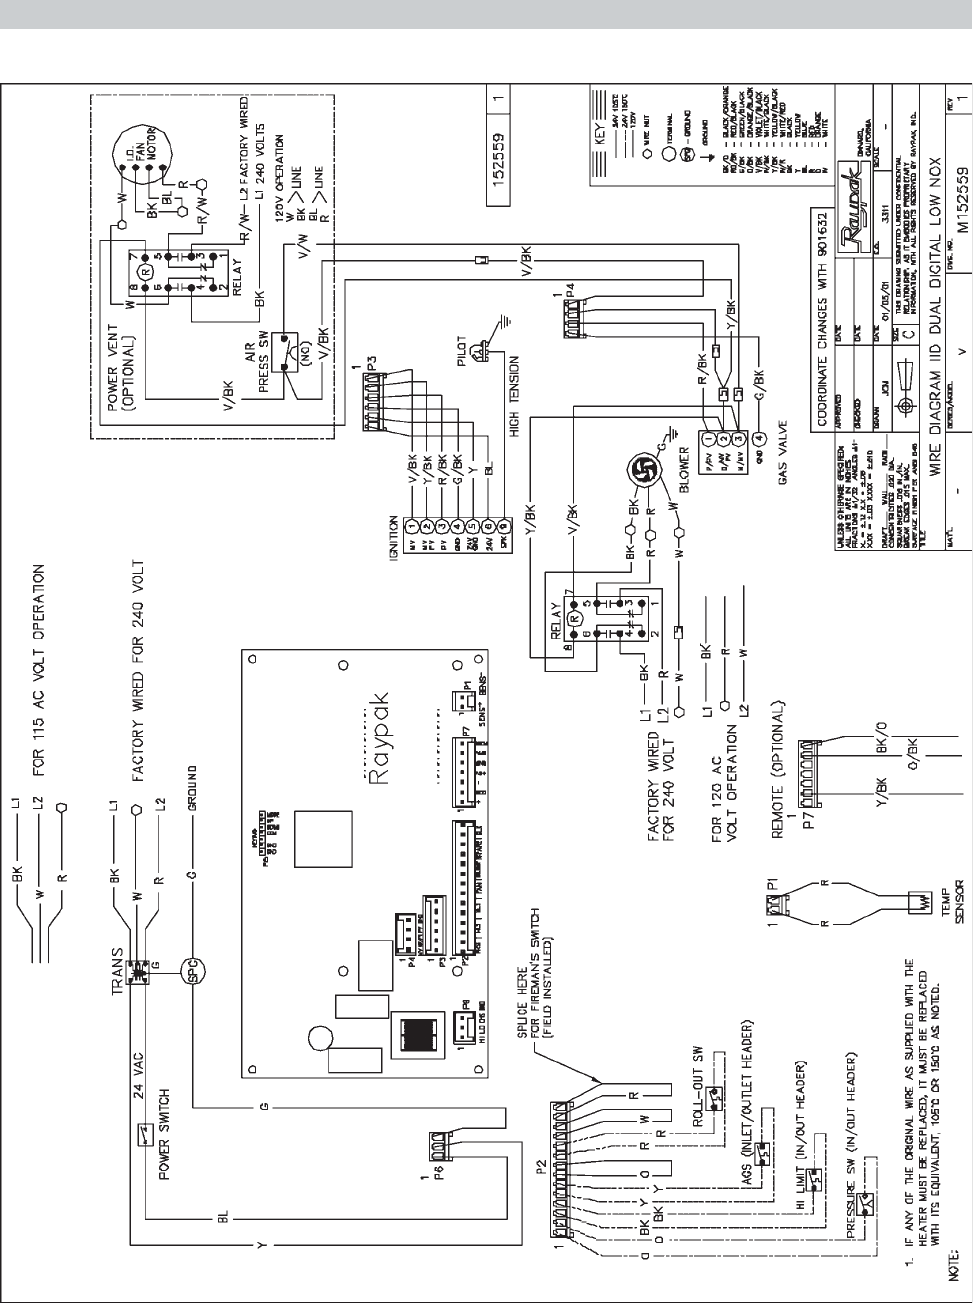 raypak pool heater wiring diagram raypak free engine image for user manual